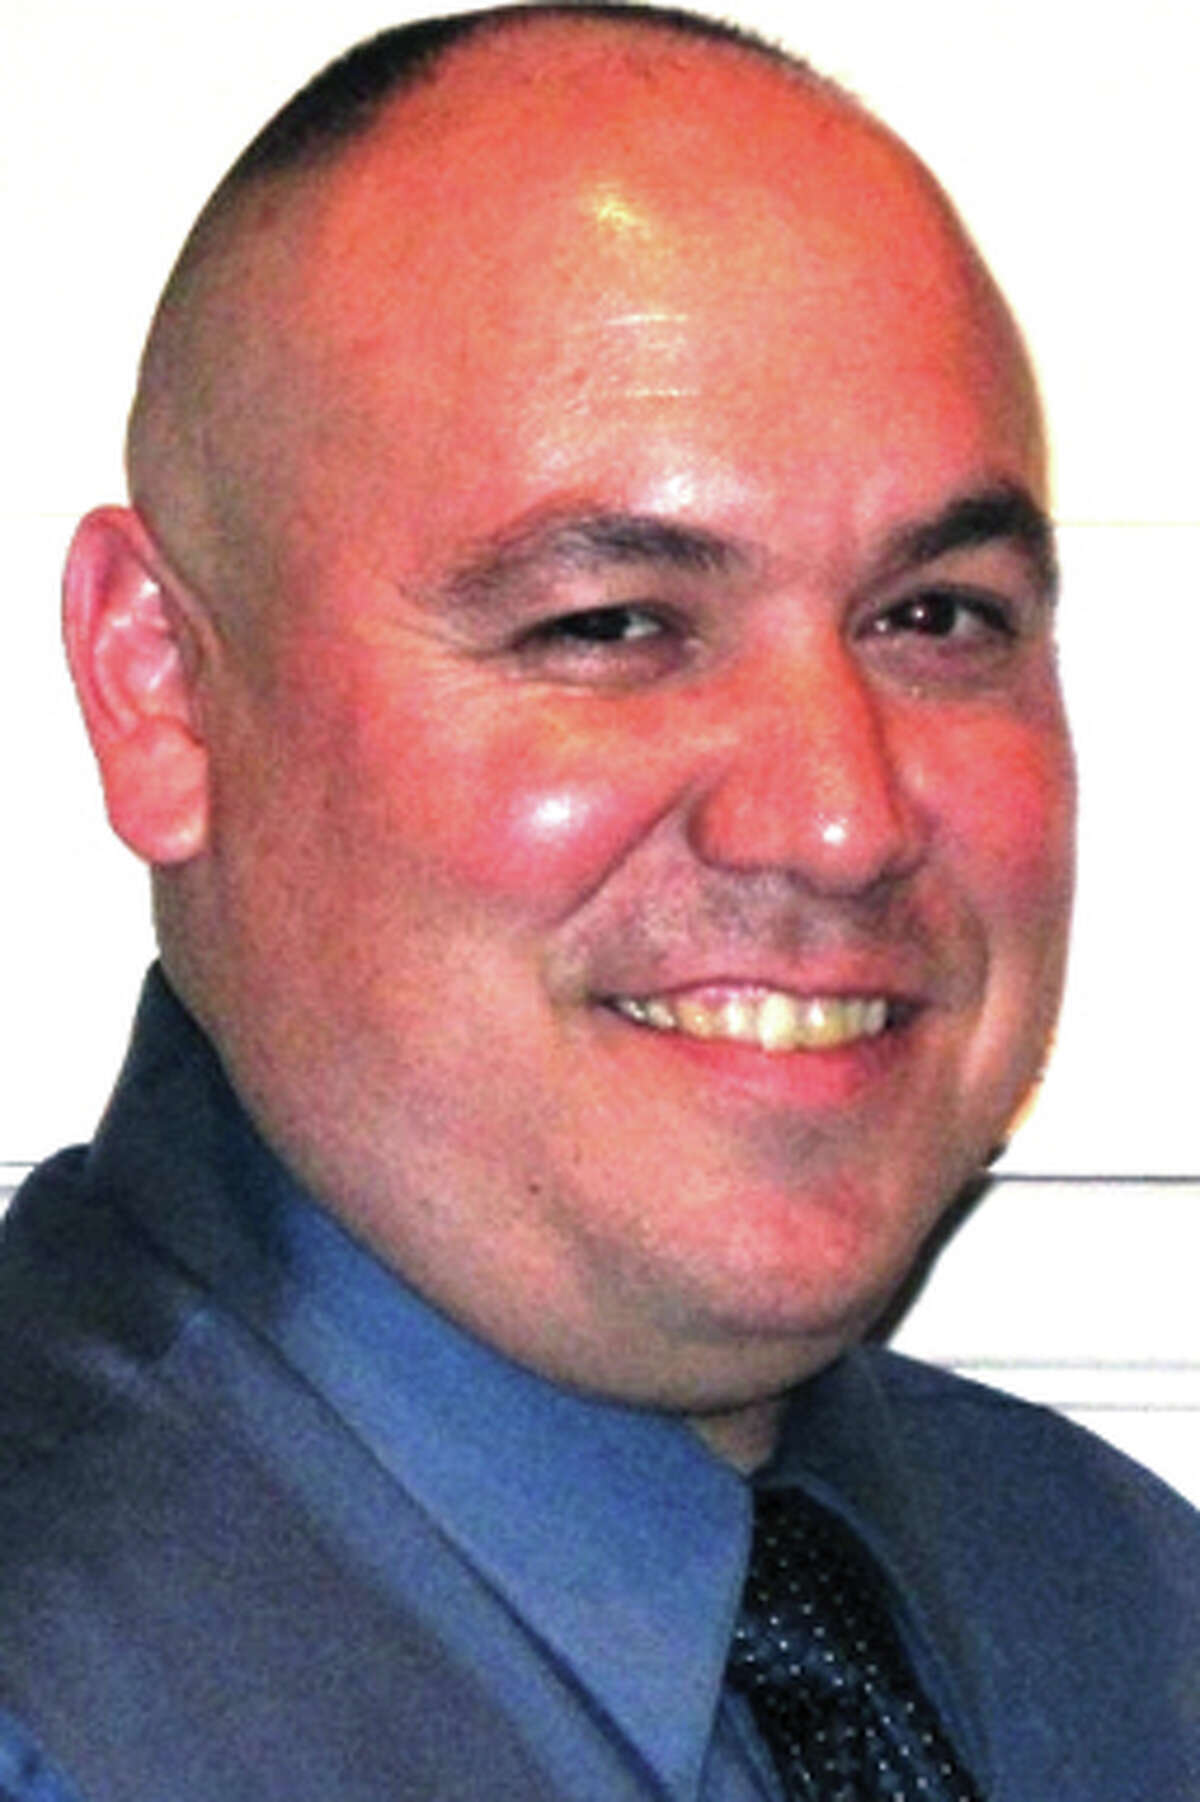 Constable Brian Bachmann was fatally shot while serving an eviction notice near Texas A&M on Monday.